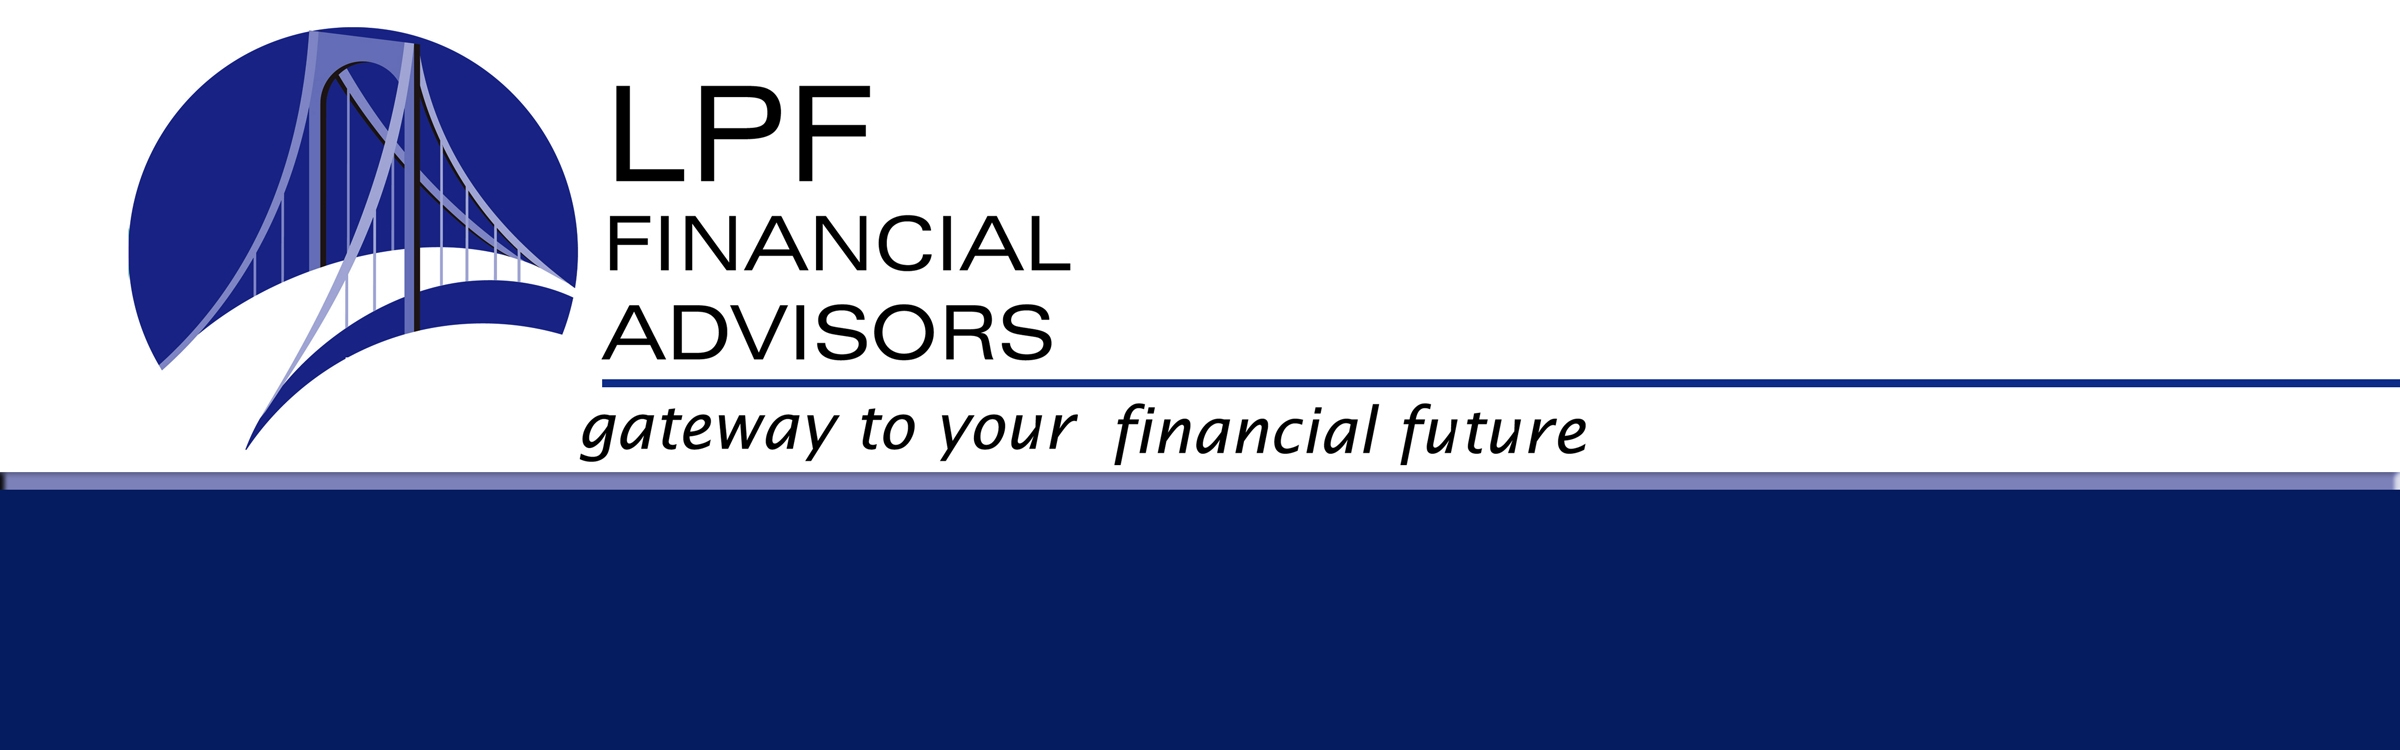 LPF Financial Advisors